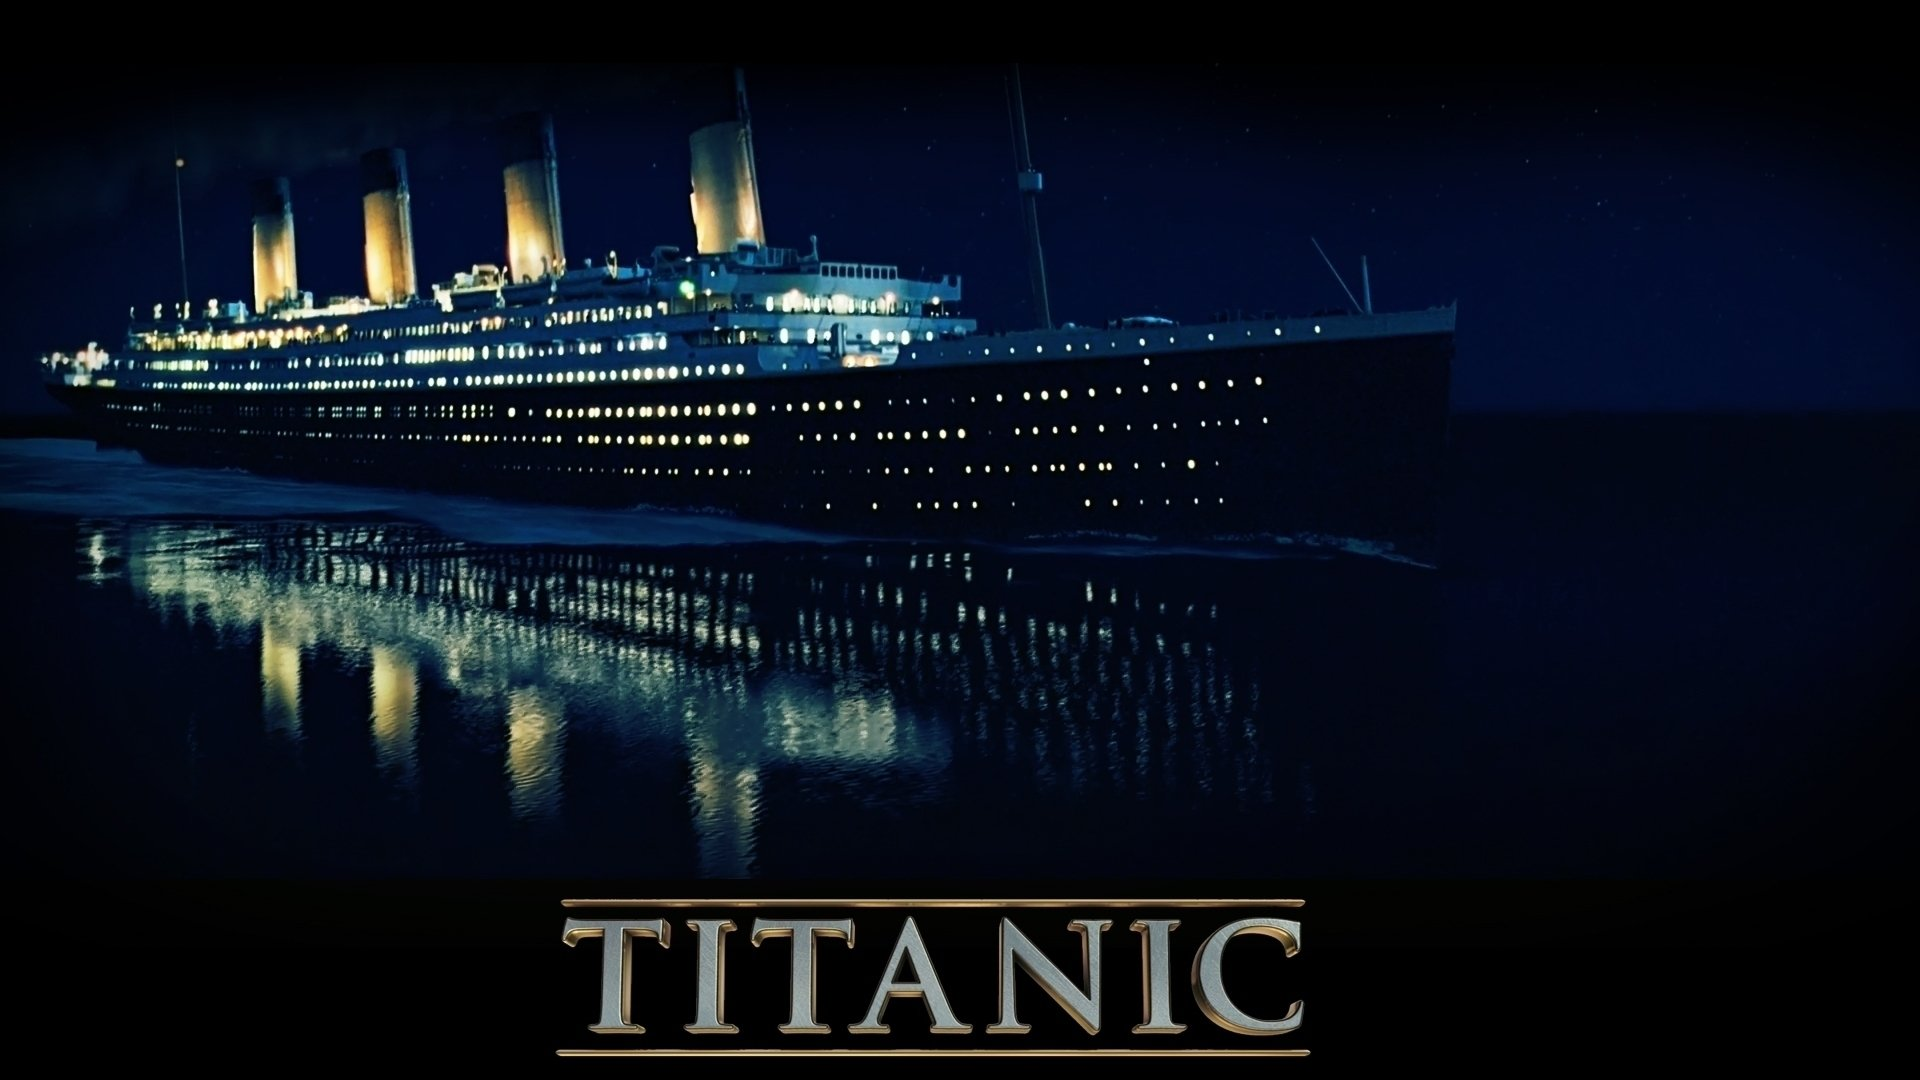 Titanic Wallpaper 1920x1080